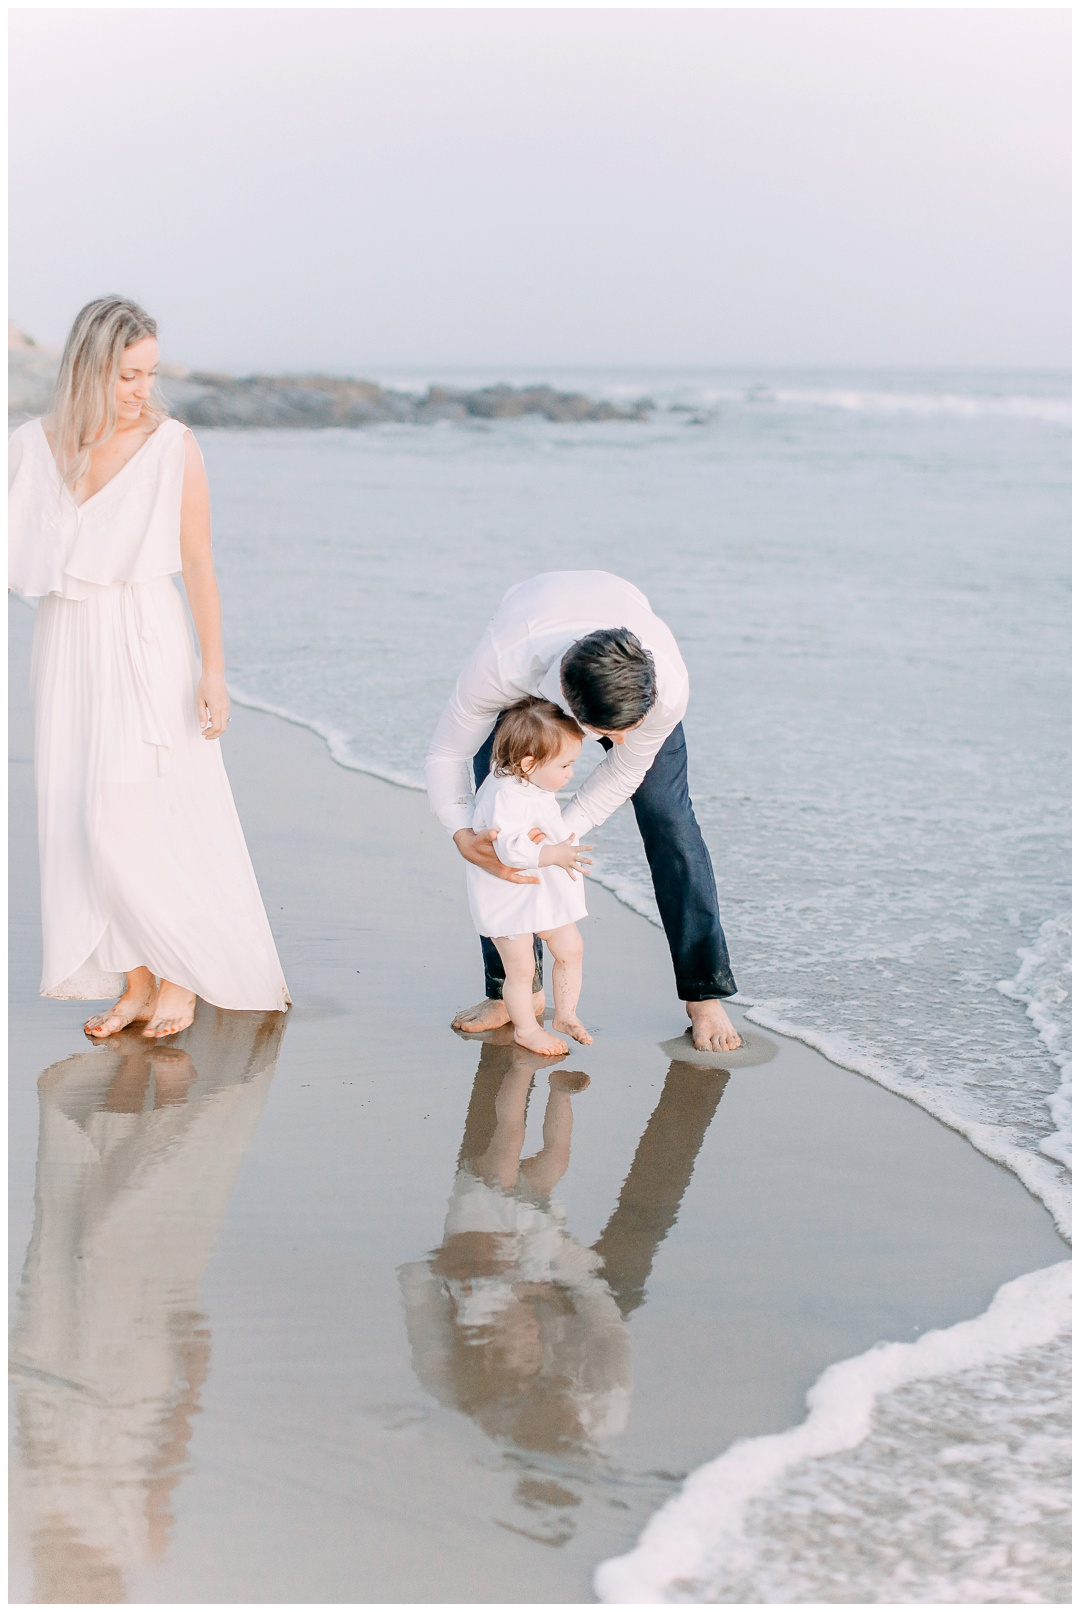 Newport_Beach_Maternity_Photographer_Orange_County_Maternity_Photography_Cori_Kleckner_Photography_Orange_County_Family_Photographer_Beach_Maternity_Session_1151.jpg